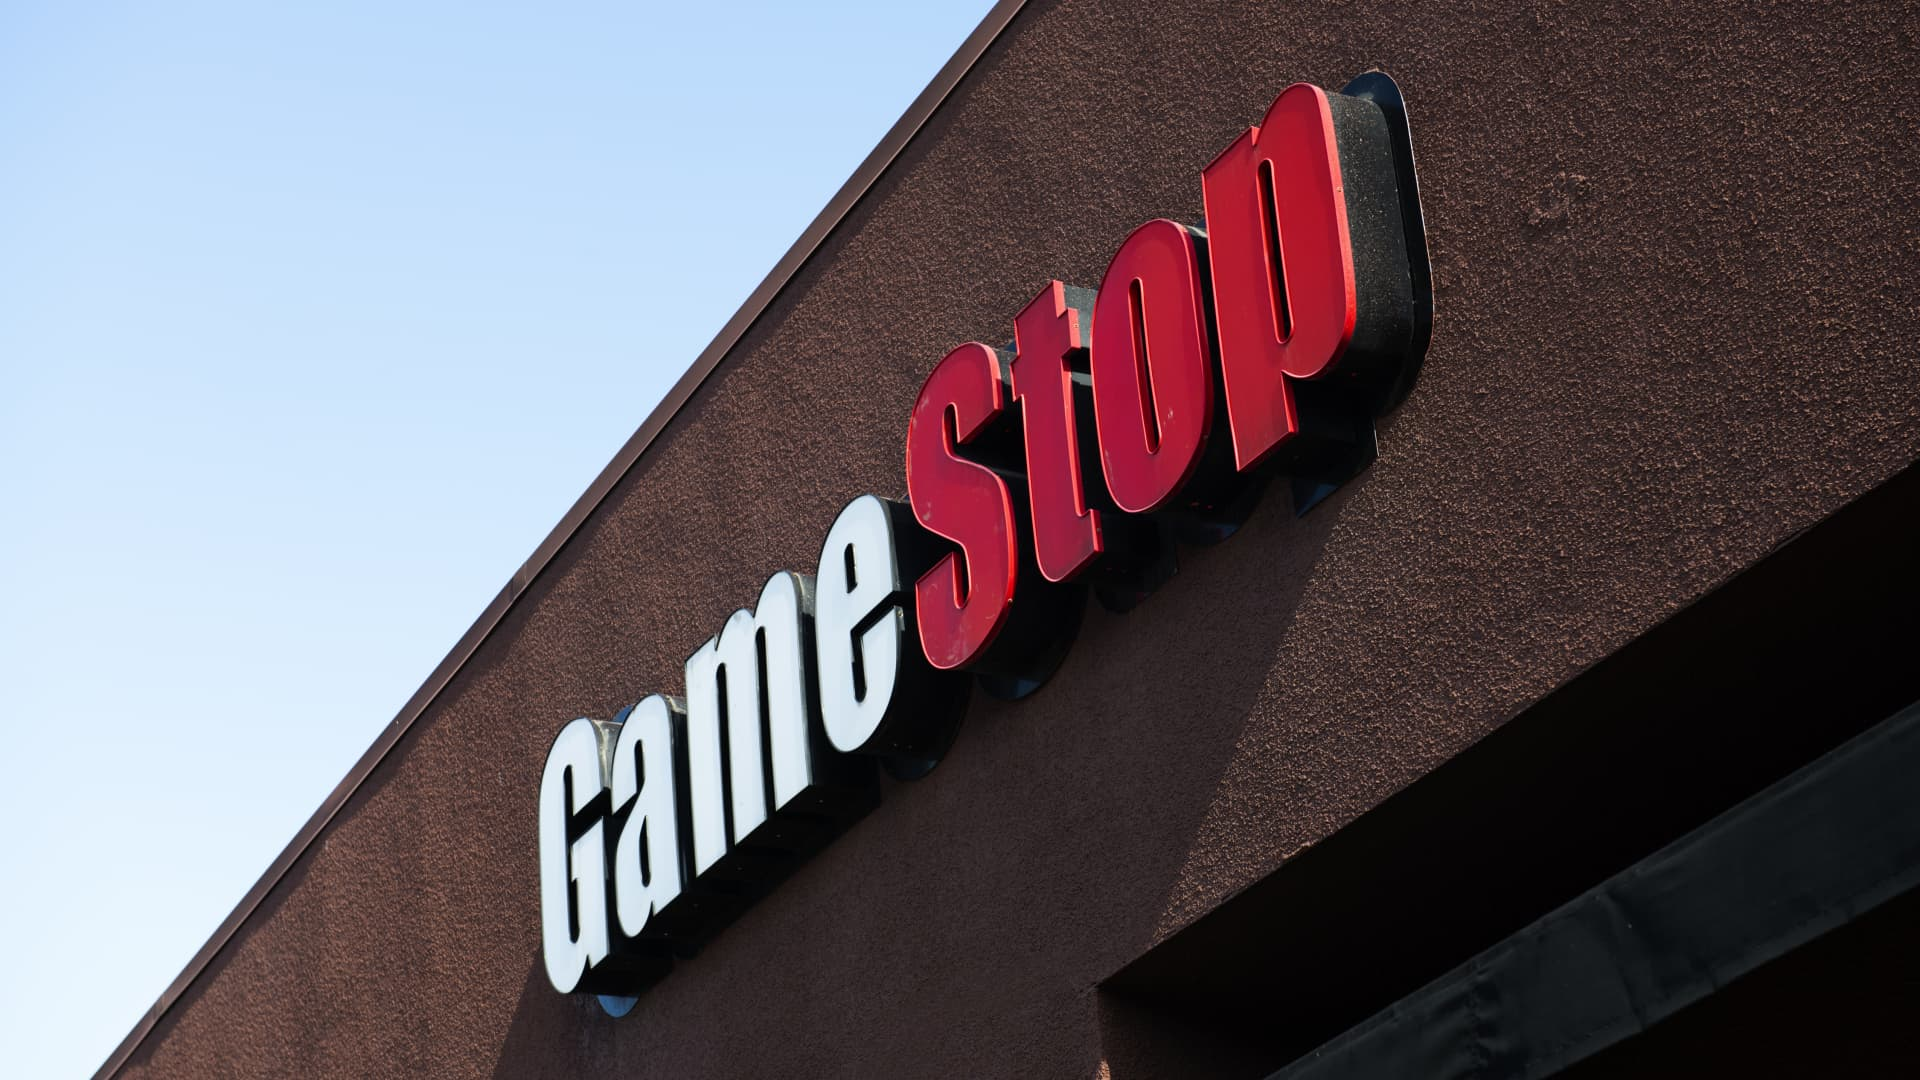 GameStop logo is seen at one of their stores in Emeryville.